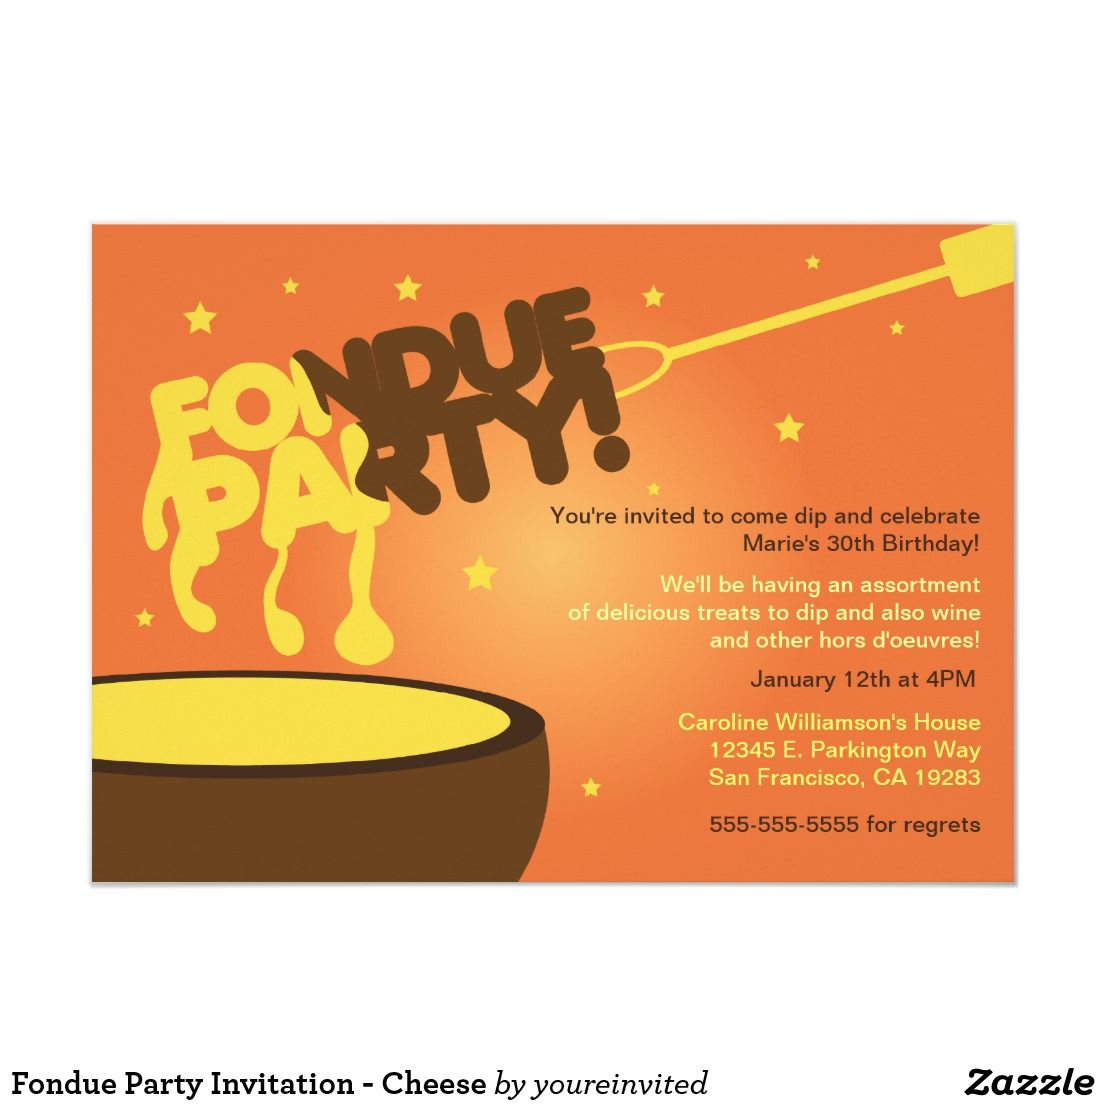 Fondue Party Invitation - Cheese | Zazzle.com #fondueparty